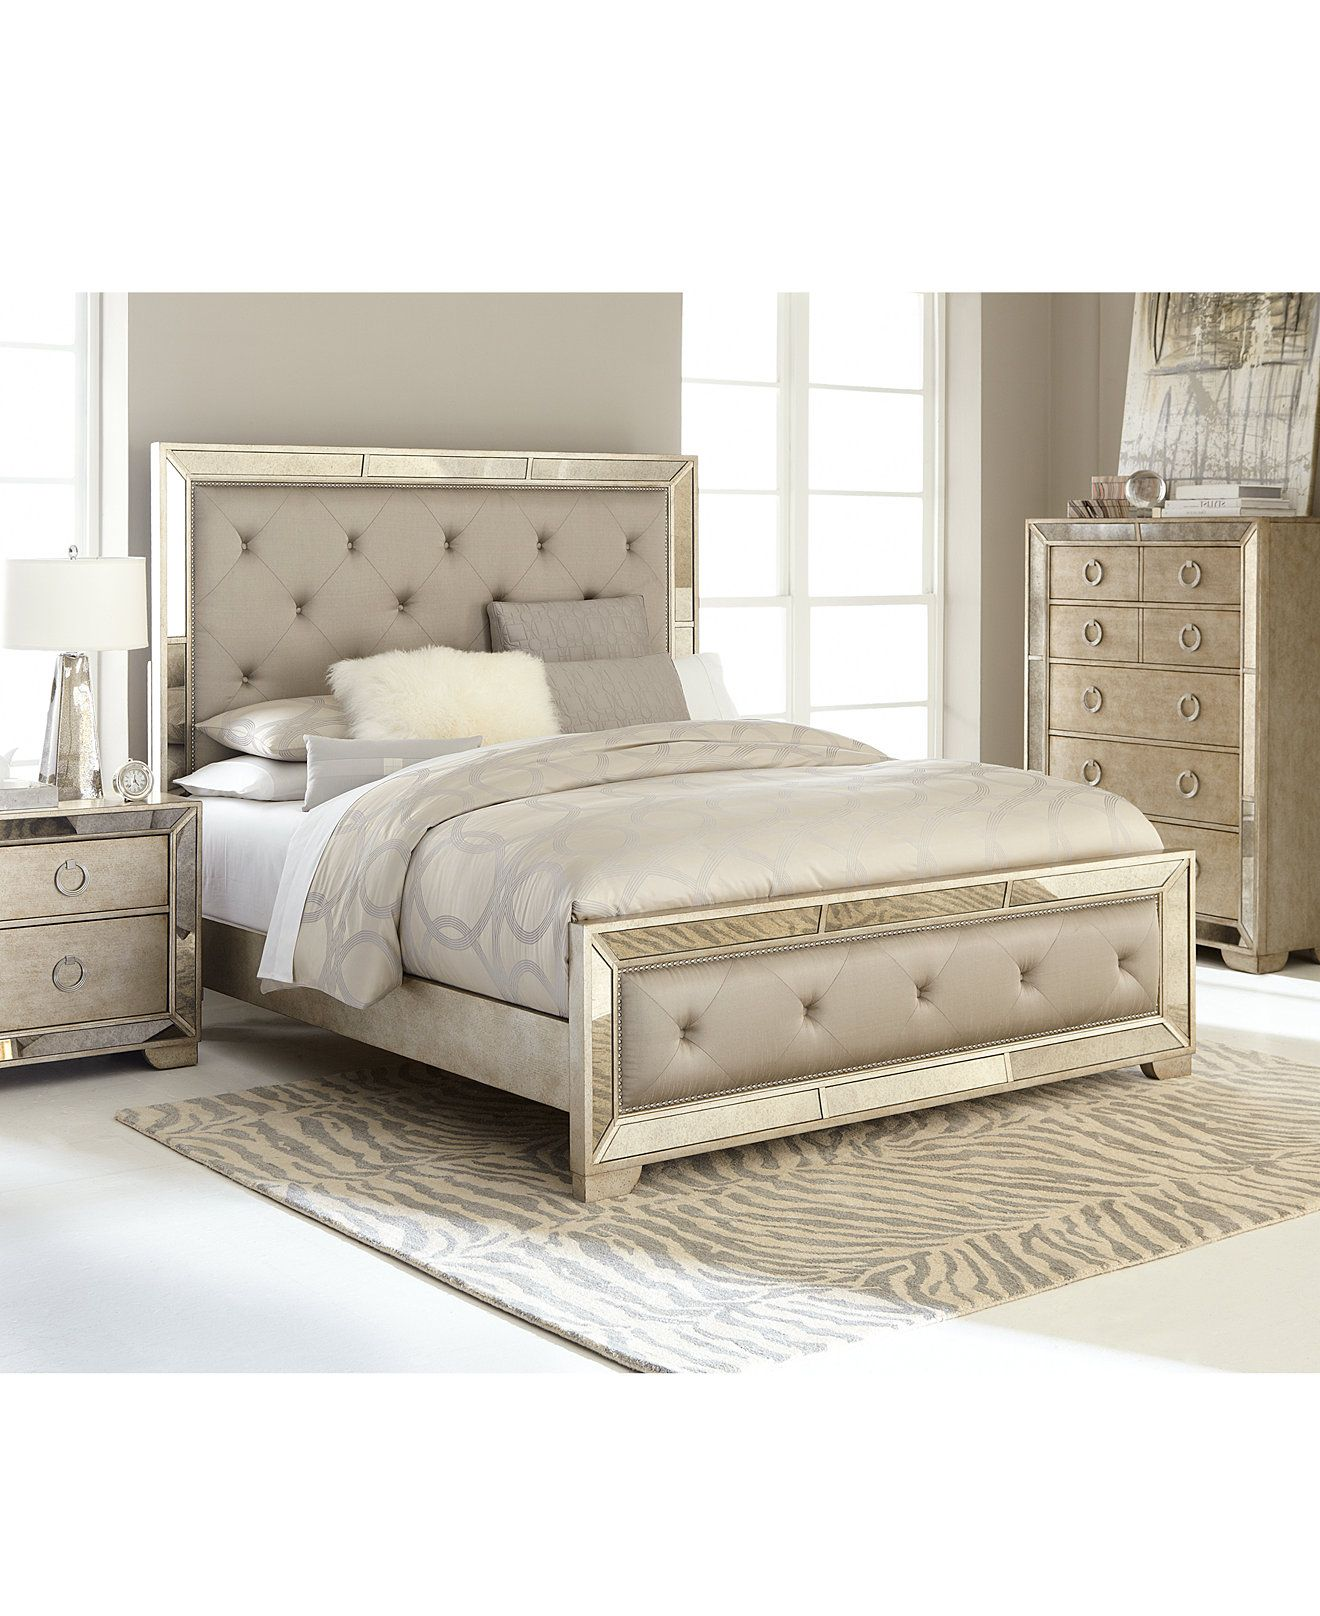 Macys Furniture Framingham: Ailey Bedroom Furniture Collection